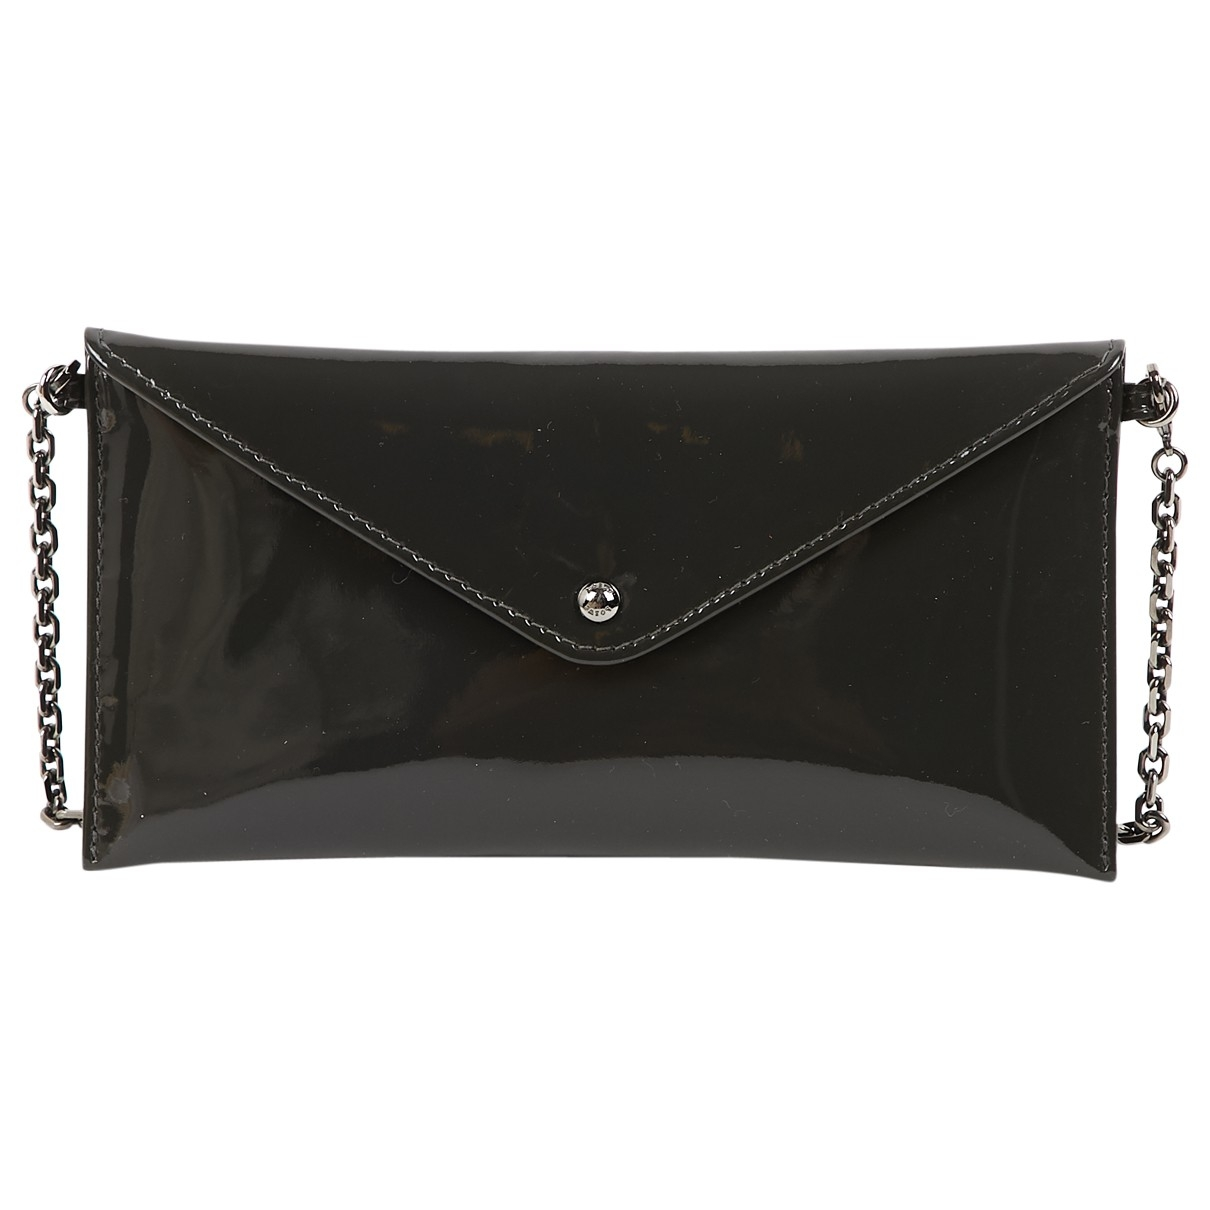 Loewe \N Anthracite Patent leather Clutch bag for Women \N